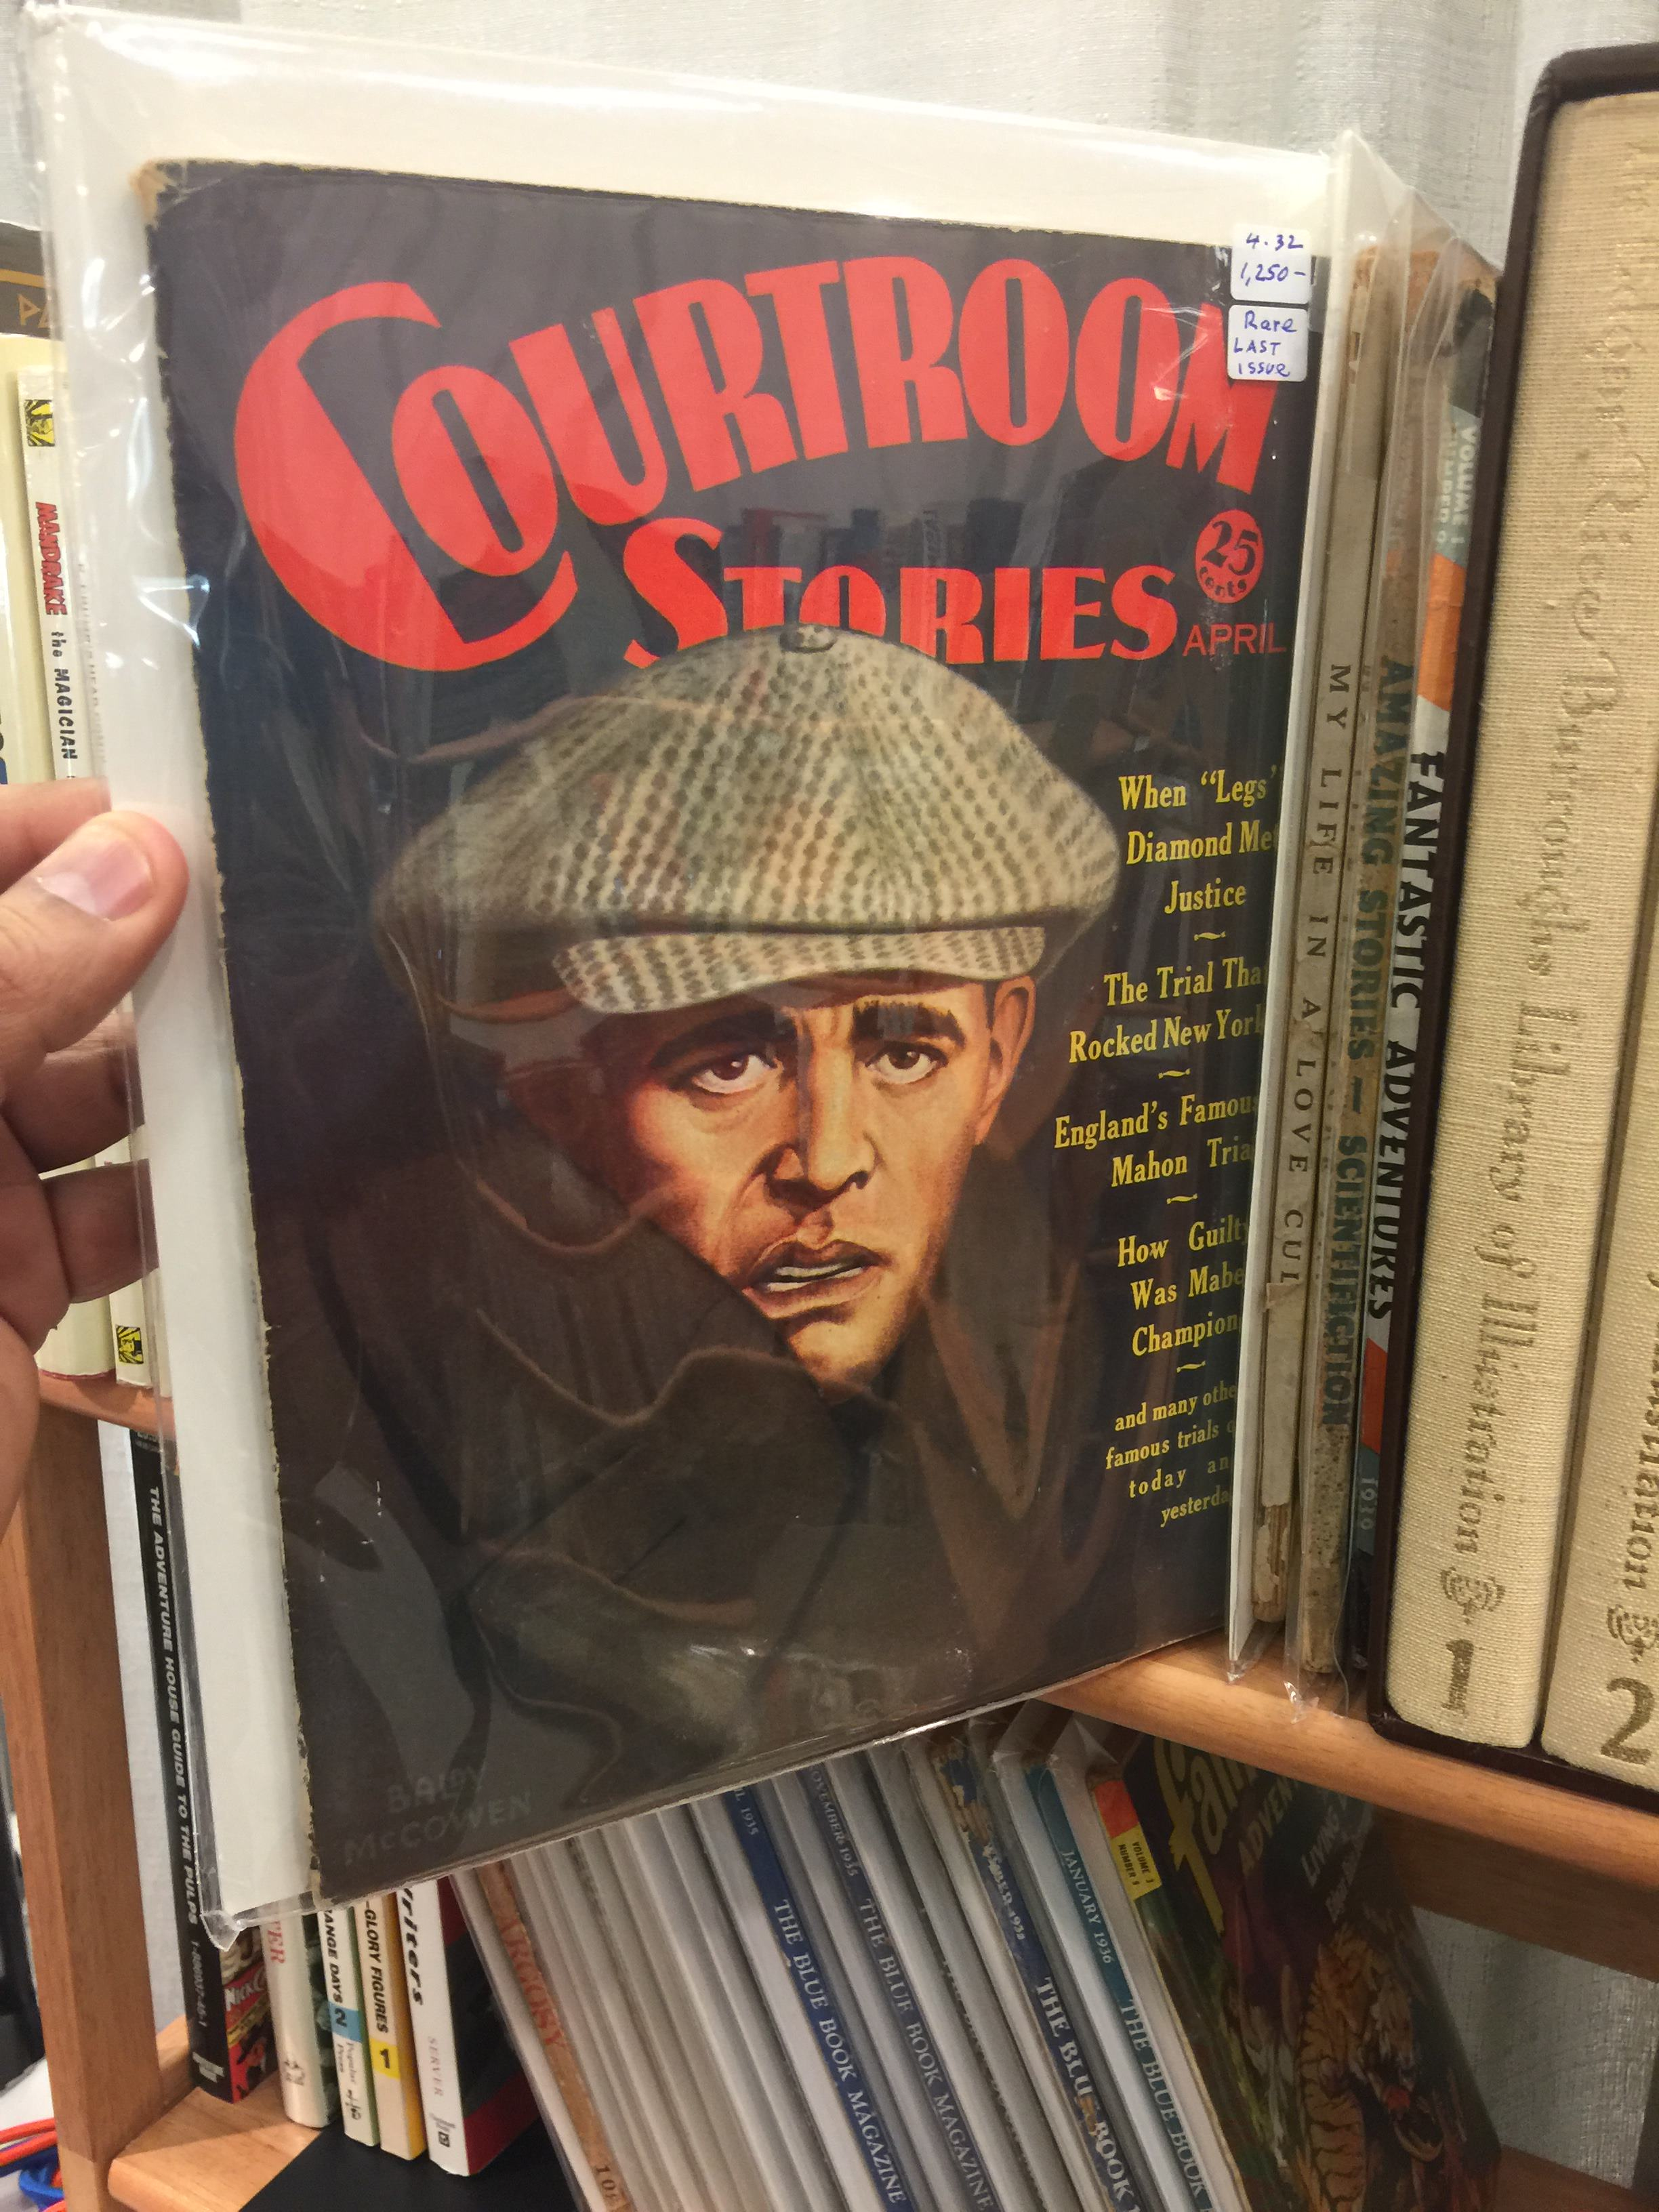 And more on the shelves, Courtroom Stories April 1932